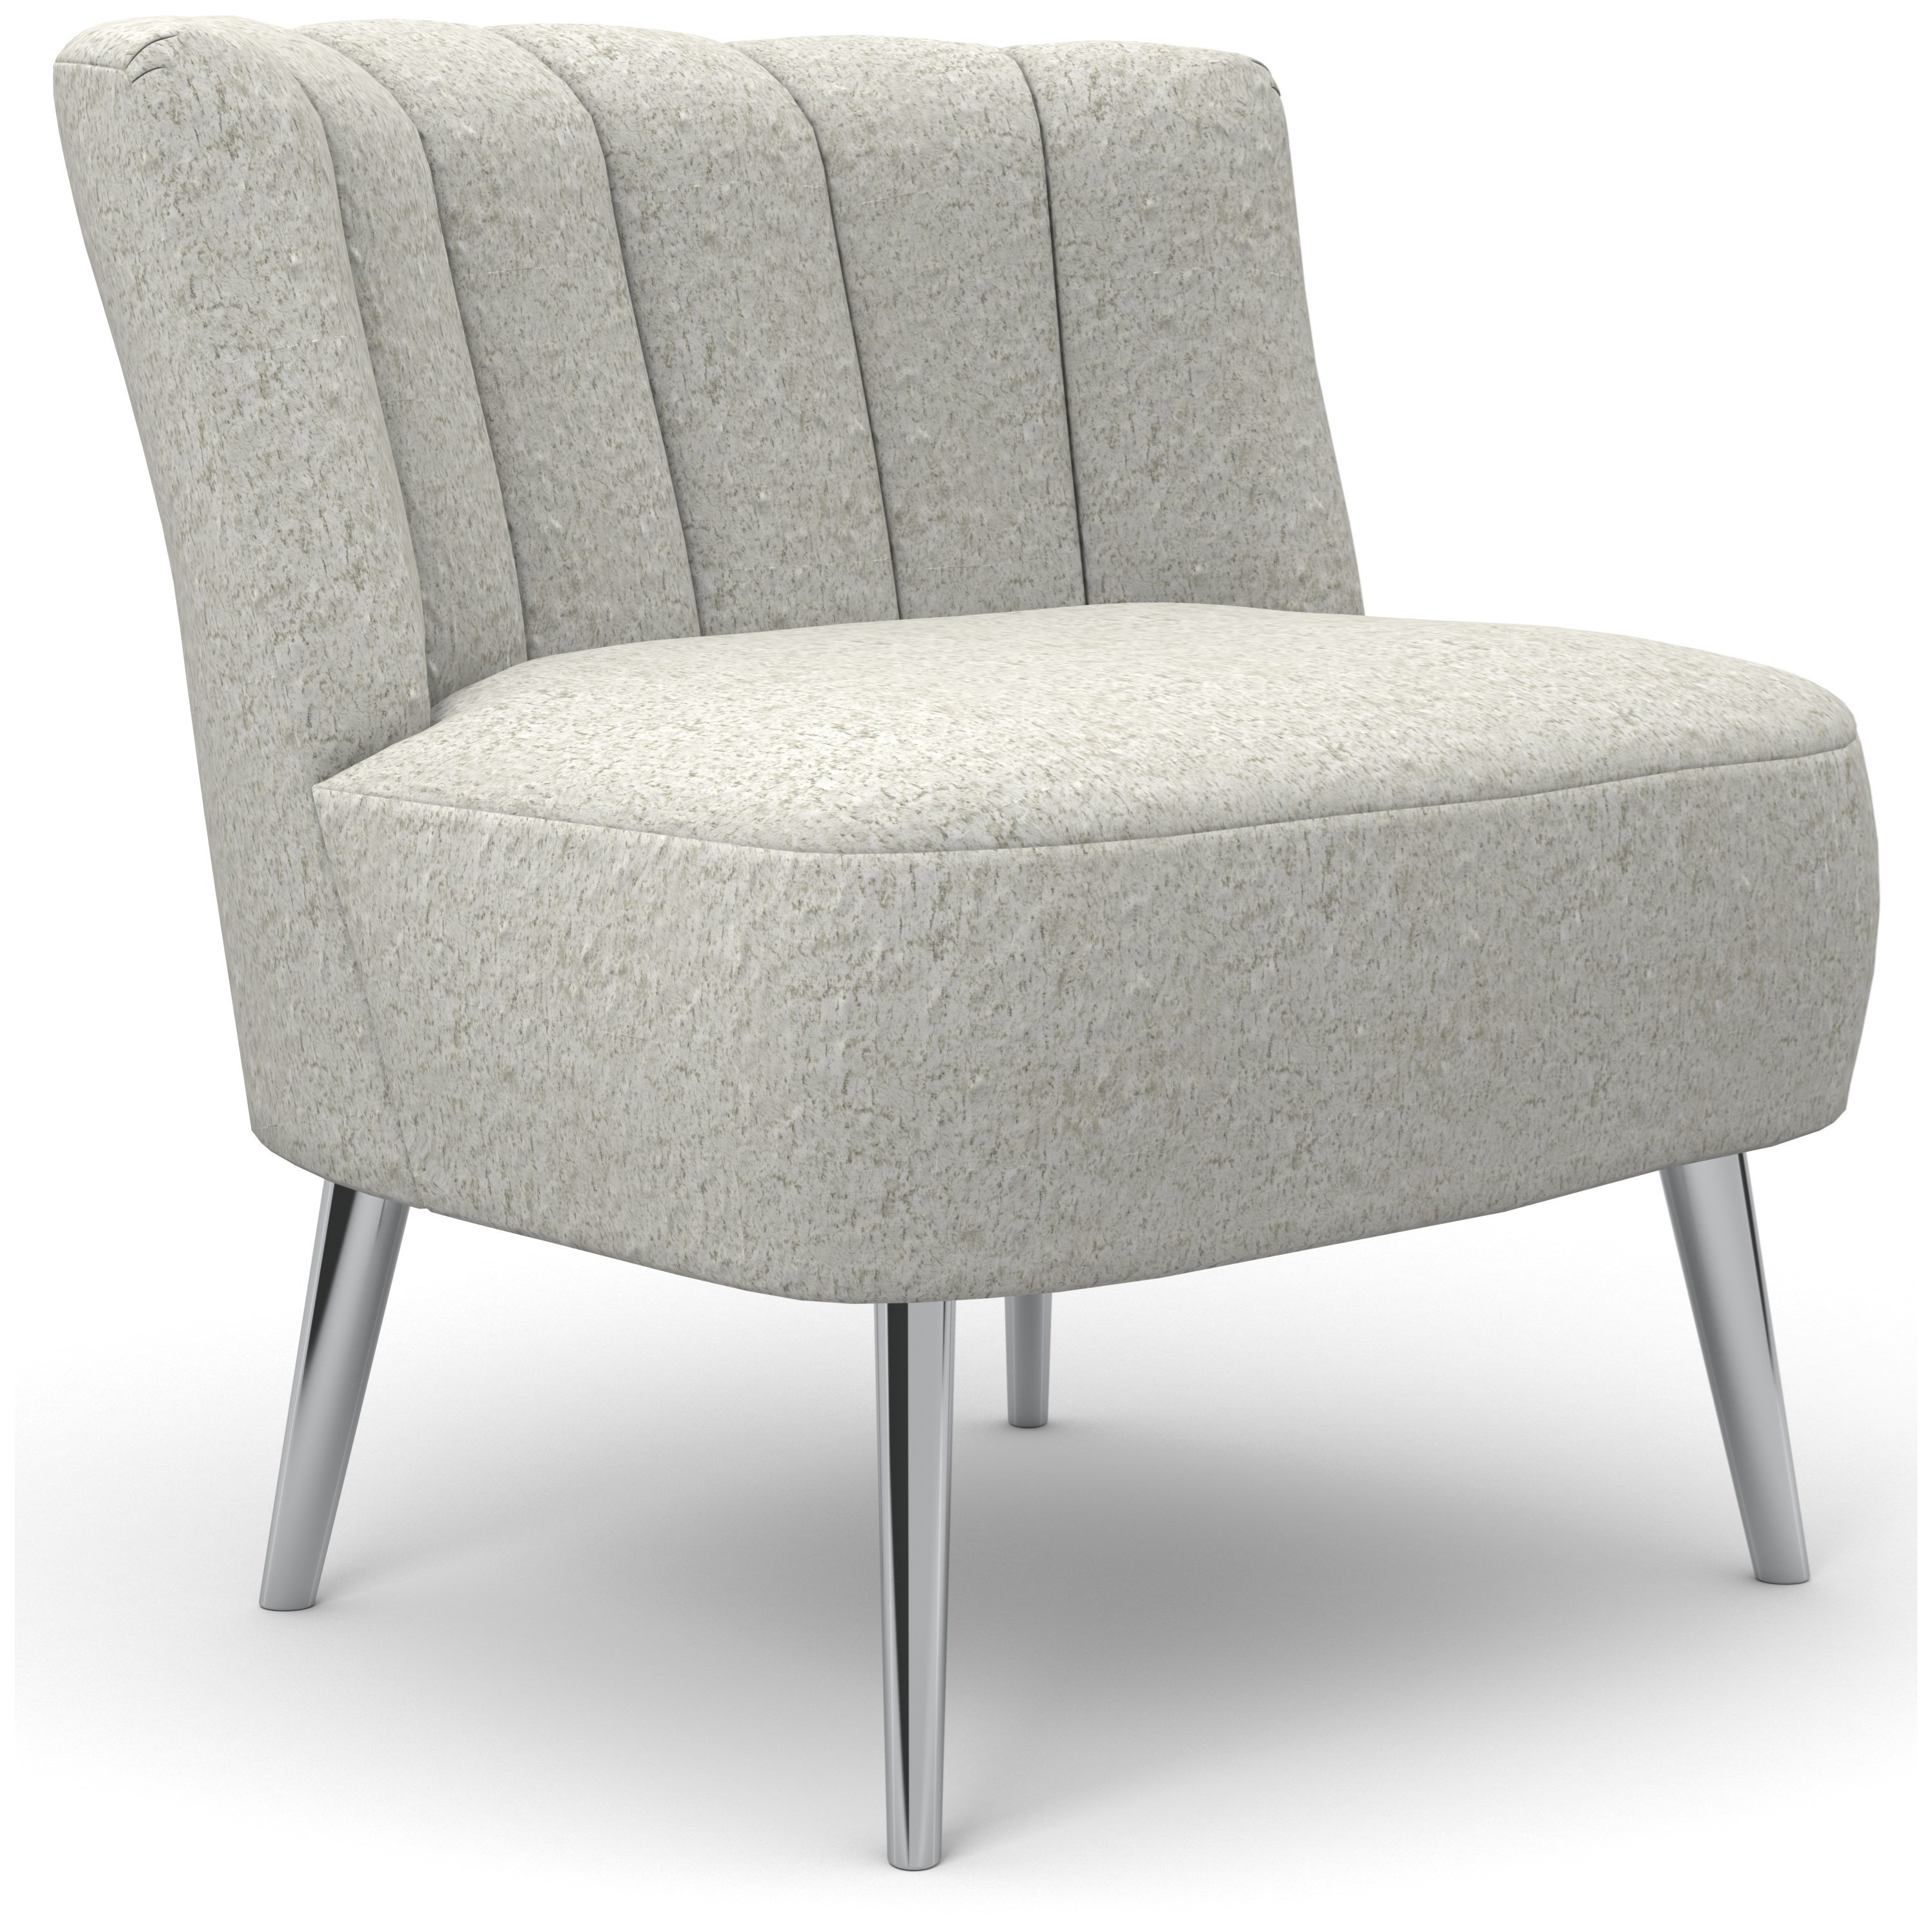 Best Xpress - Ameretta Accent Chair by Best Home Furnishings at Steger's Furniture